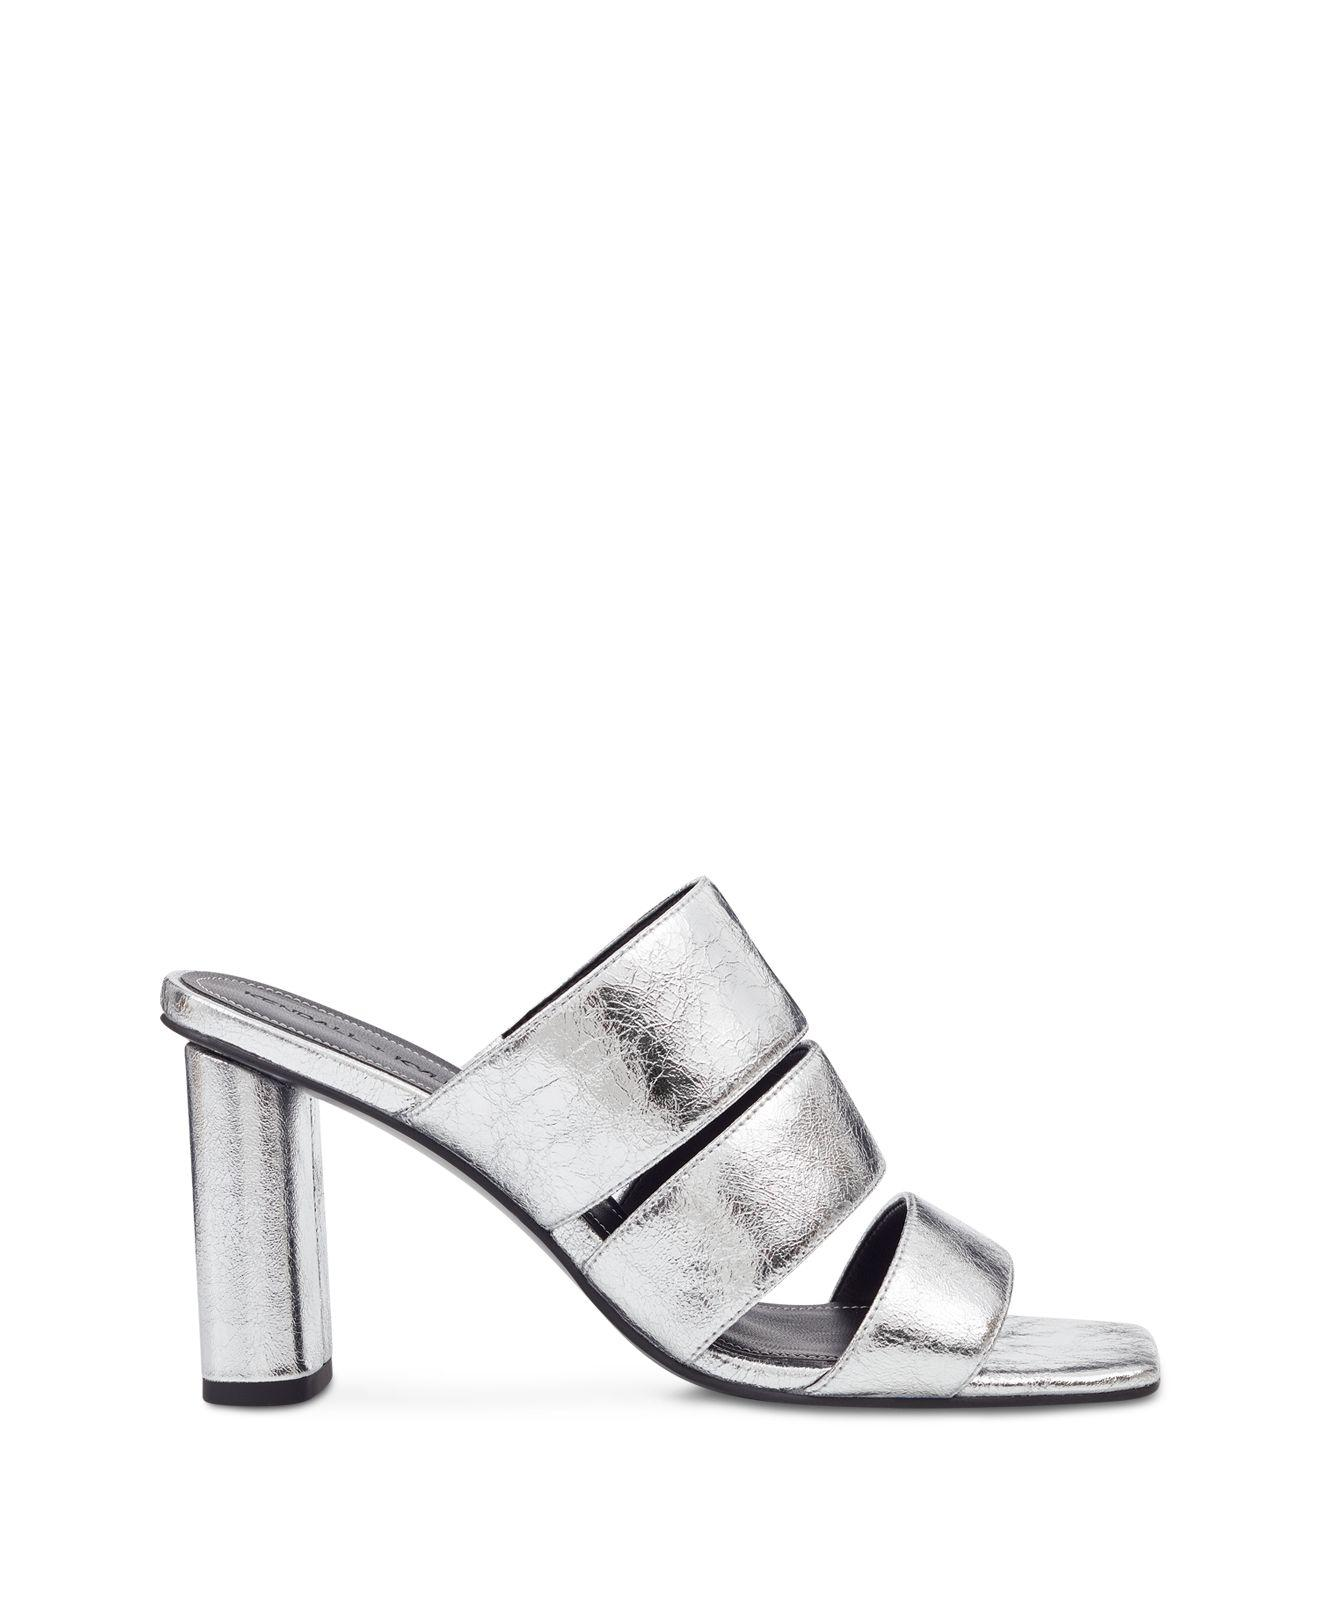 Kendall And Kylie Women's Leila Metallic Leather Block Heel Slide Sandals P5GnVOr